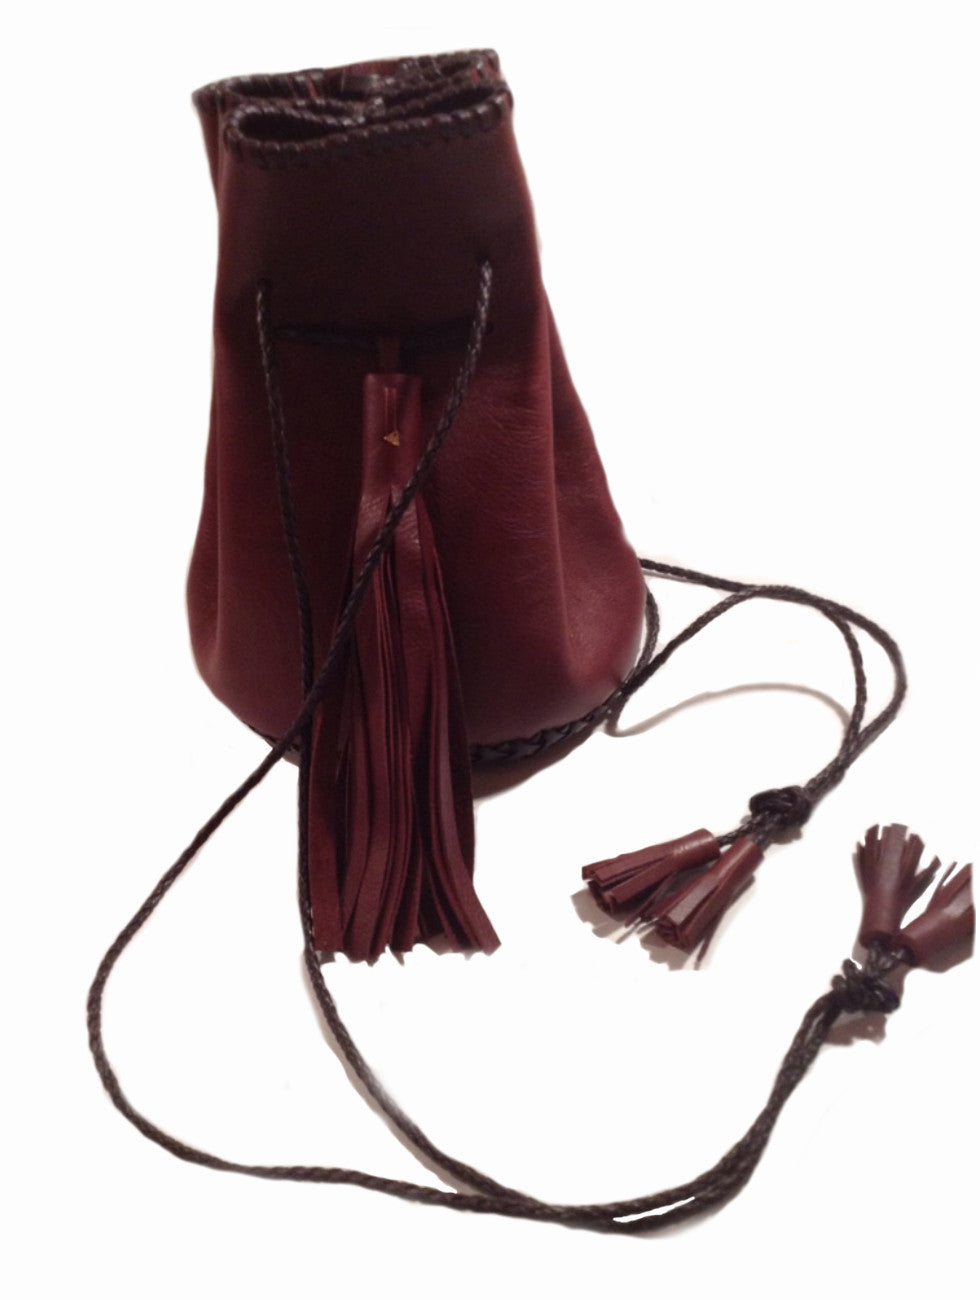 Burgundy Ox Blood Maroon Leather Whipstitch Bullet Bag Wendy Nichol Handmade in NYC Leather Bucket Handbag Burgundy Maroon